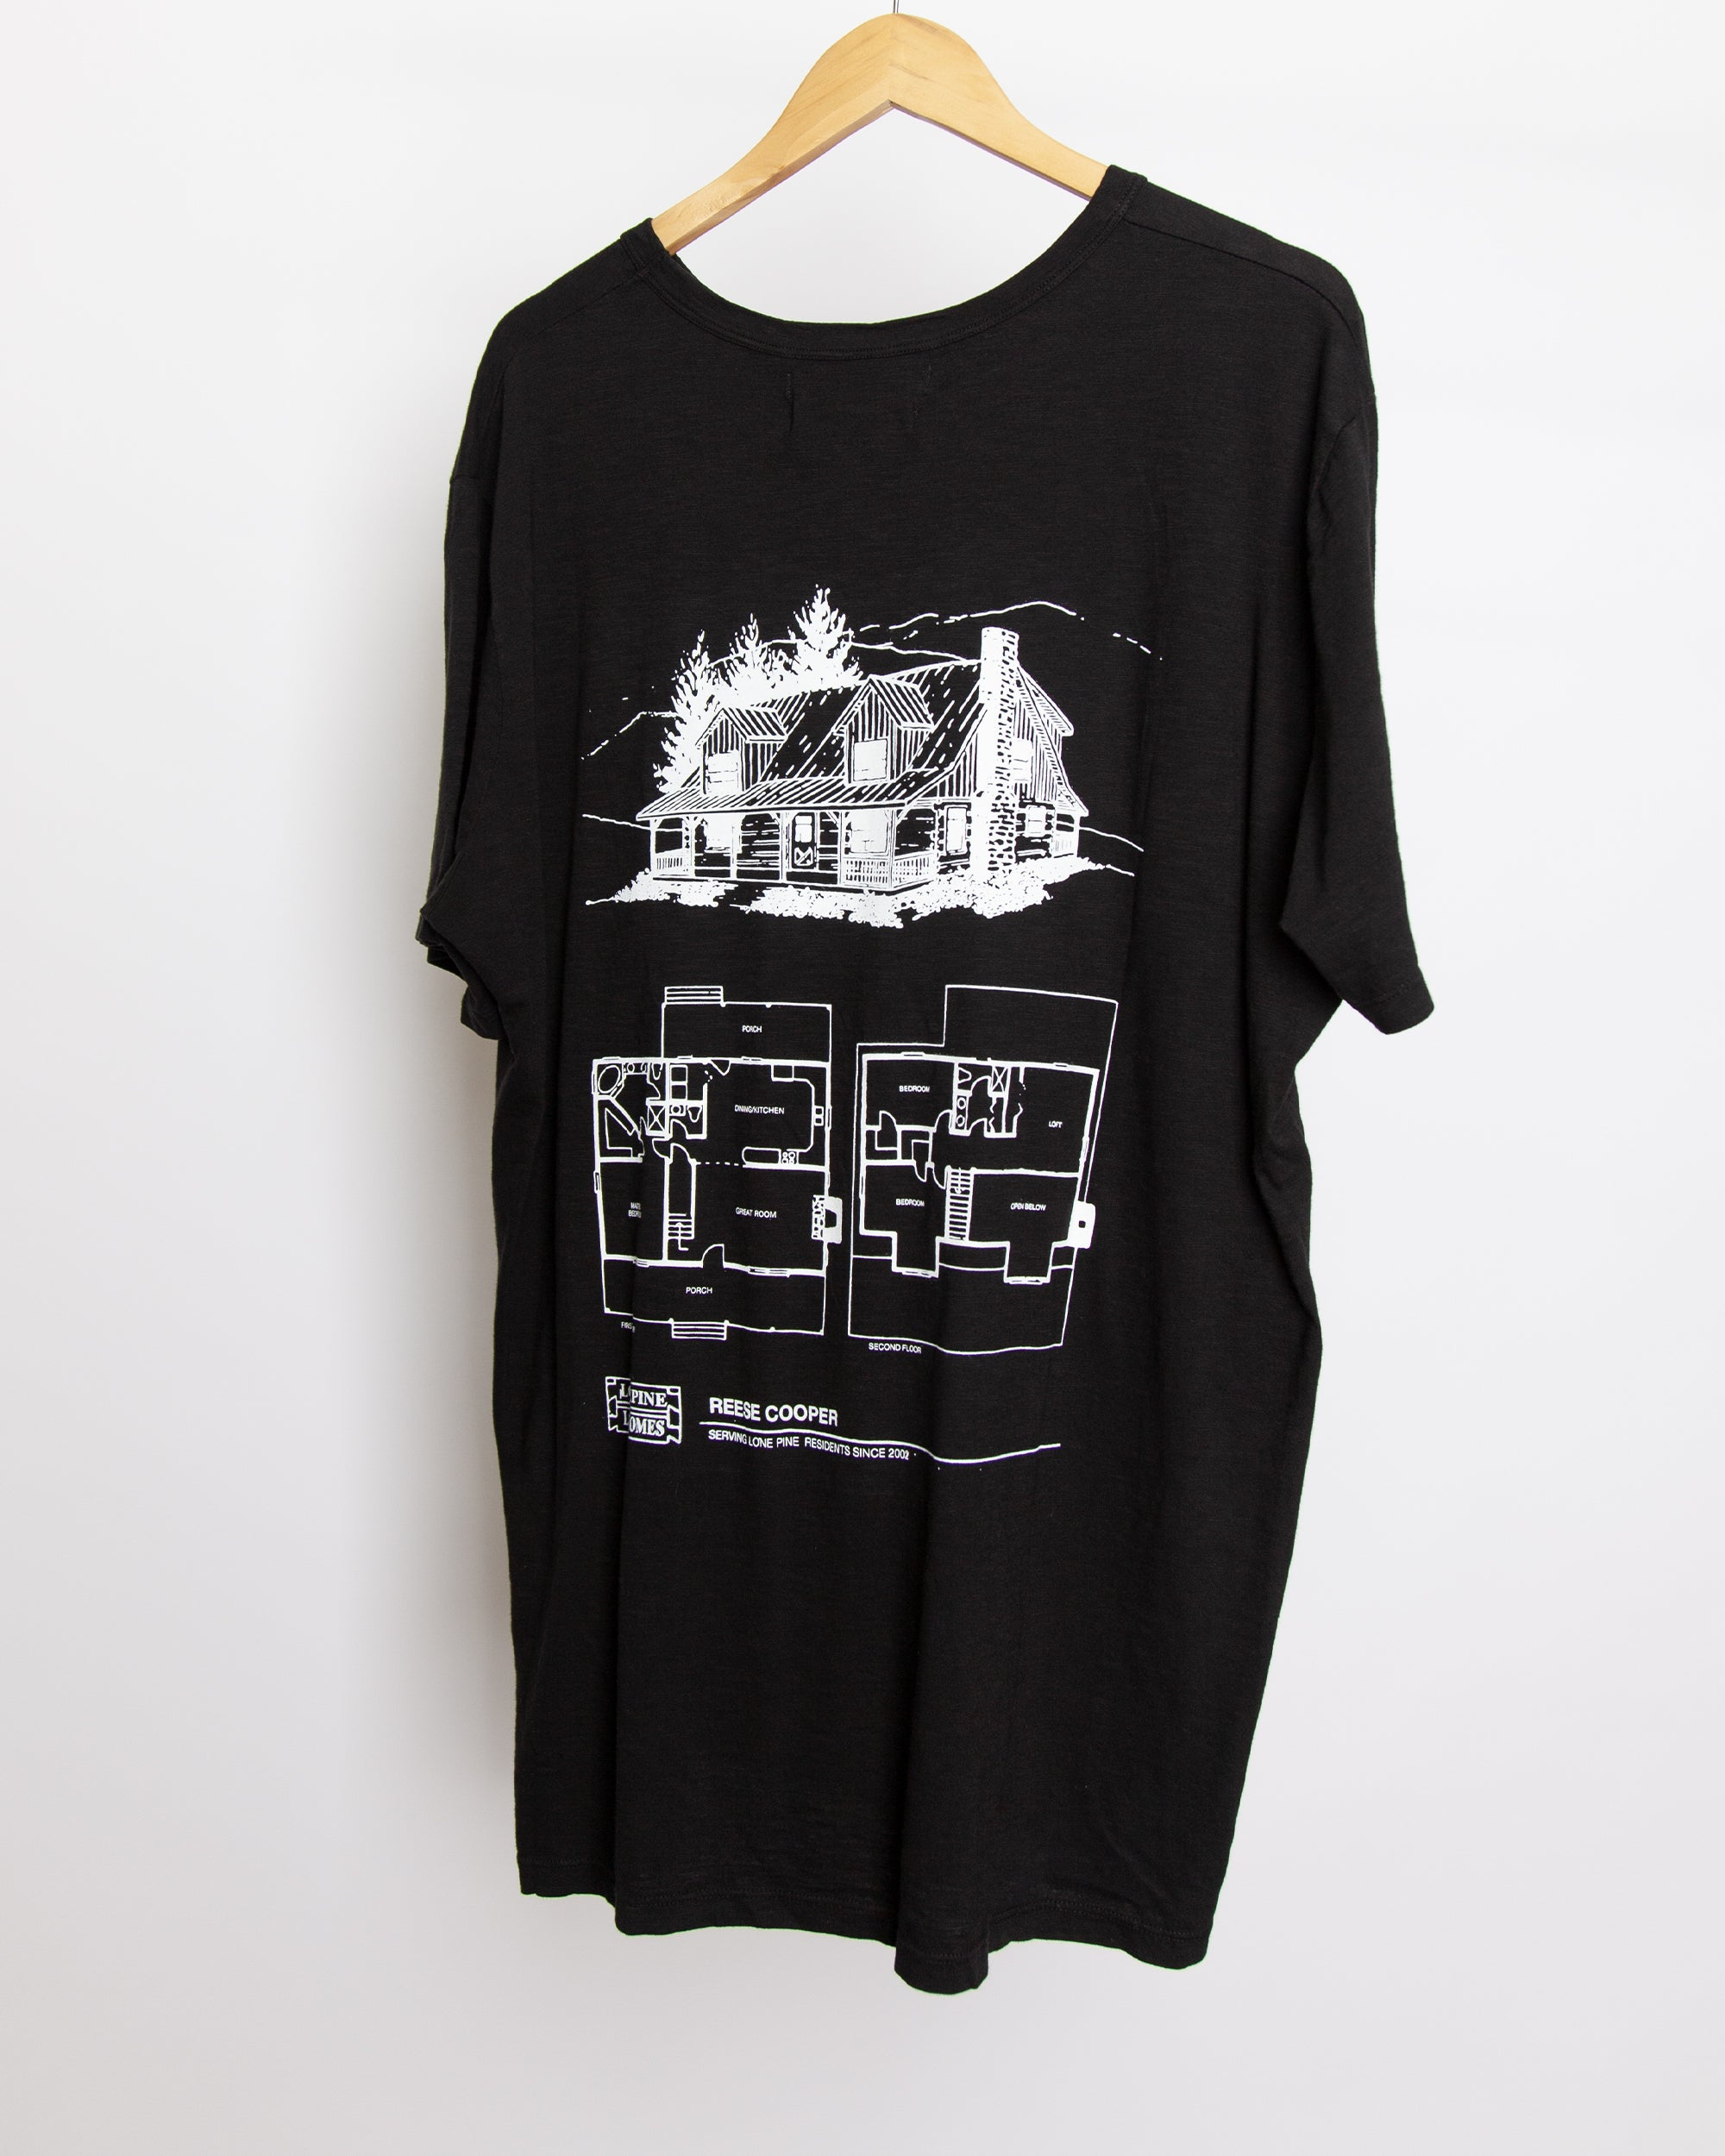 Lone Pine - Cabin Fever Tee Shirt in Black